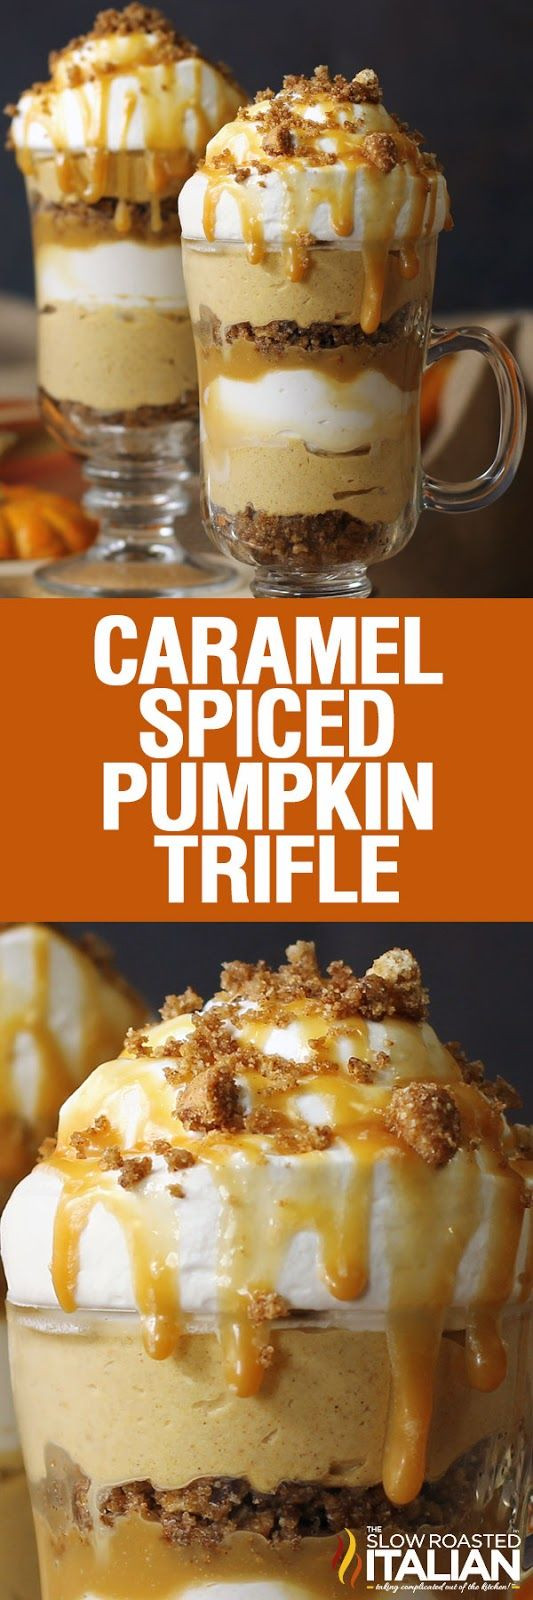 Fall Flavors For Desserts  This Caramel Spiced Pumpkin Parfait brings your favorite